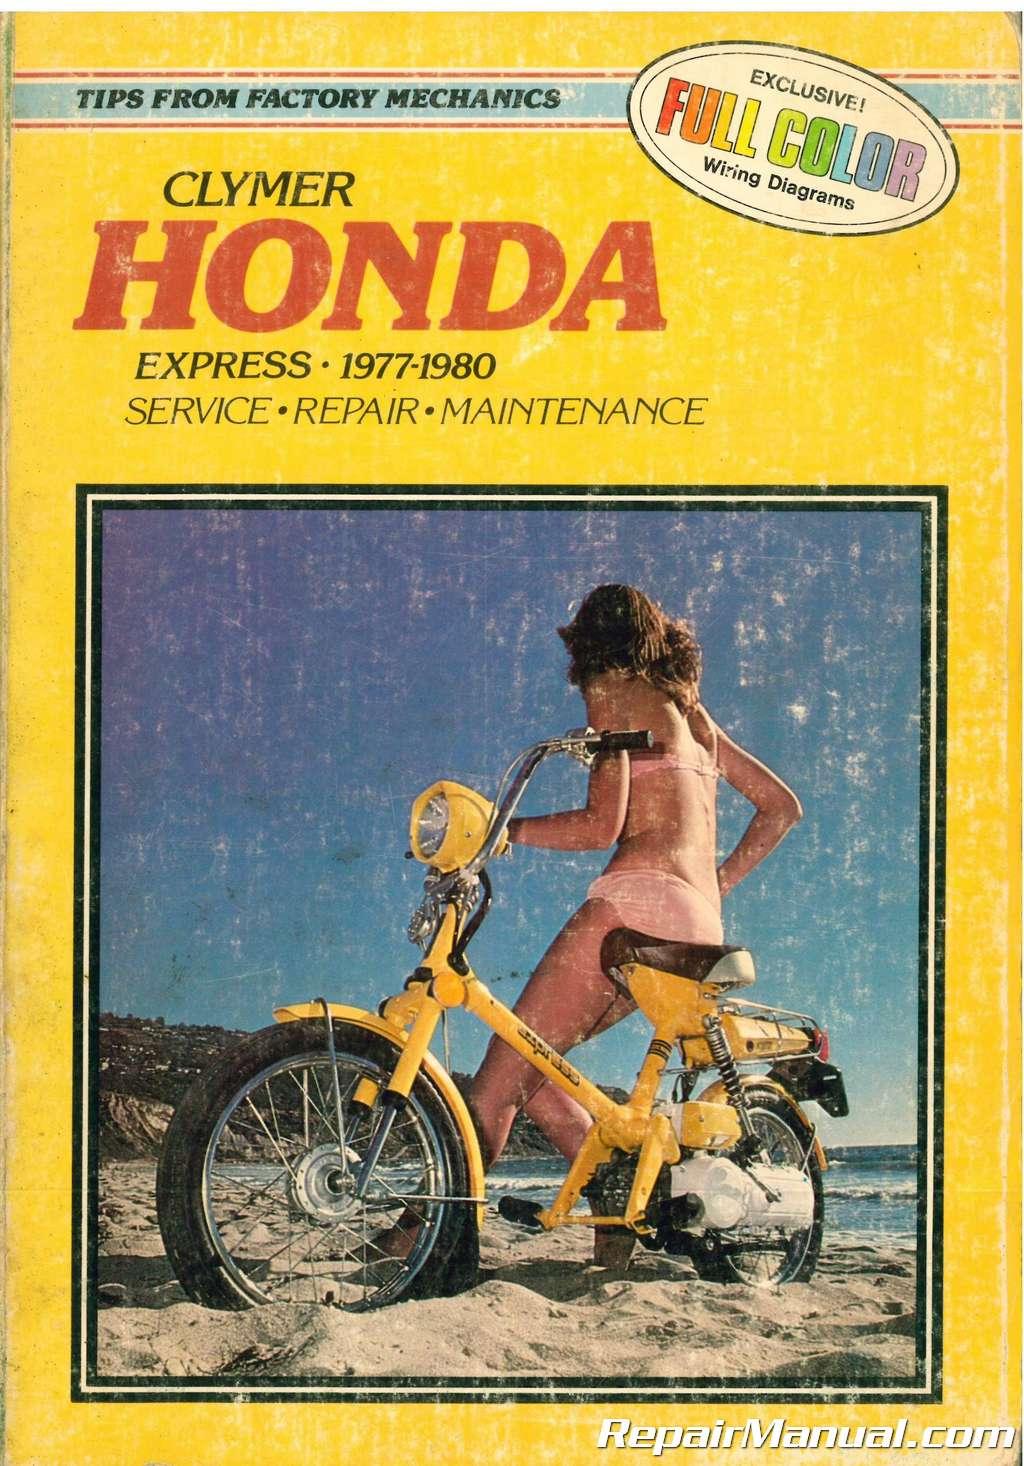 Used Clymer 1977 1980 Honda Express Service Repair Maintenance Motorcycle 19781979 Complete Wiring Diagram All About Chapter Four Engine Five Clutch Starter And Power Transmission Six Fuel Oil Exhaust Systems Seven Electrical System